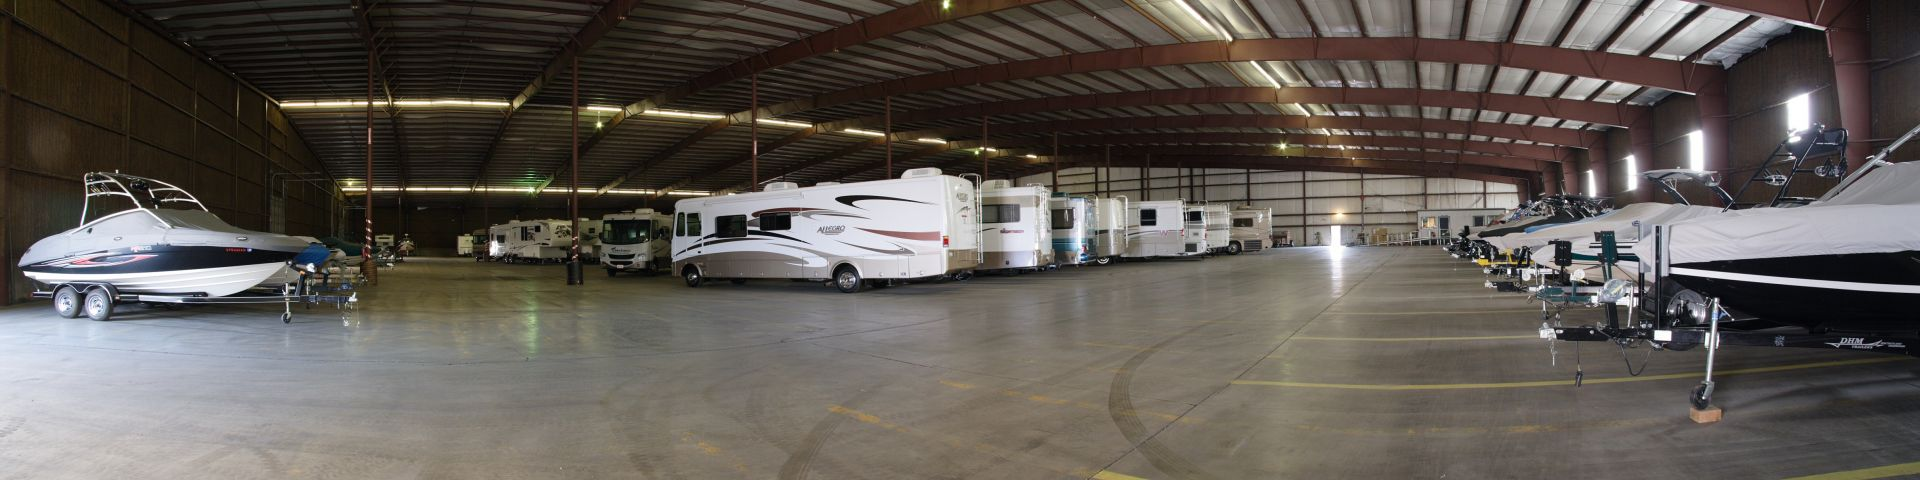 Photo gallery rv and boat storage indoor rv and boat for Rv boat storage buildings